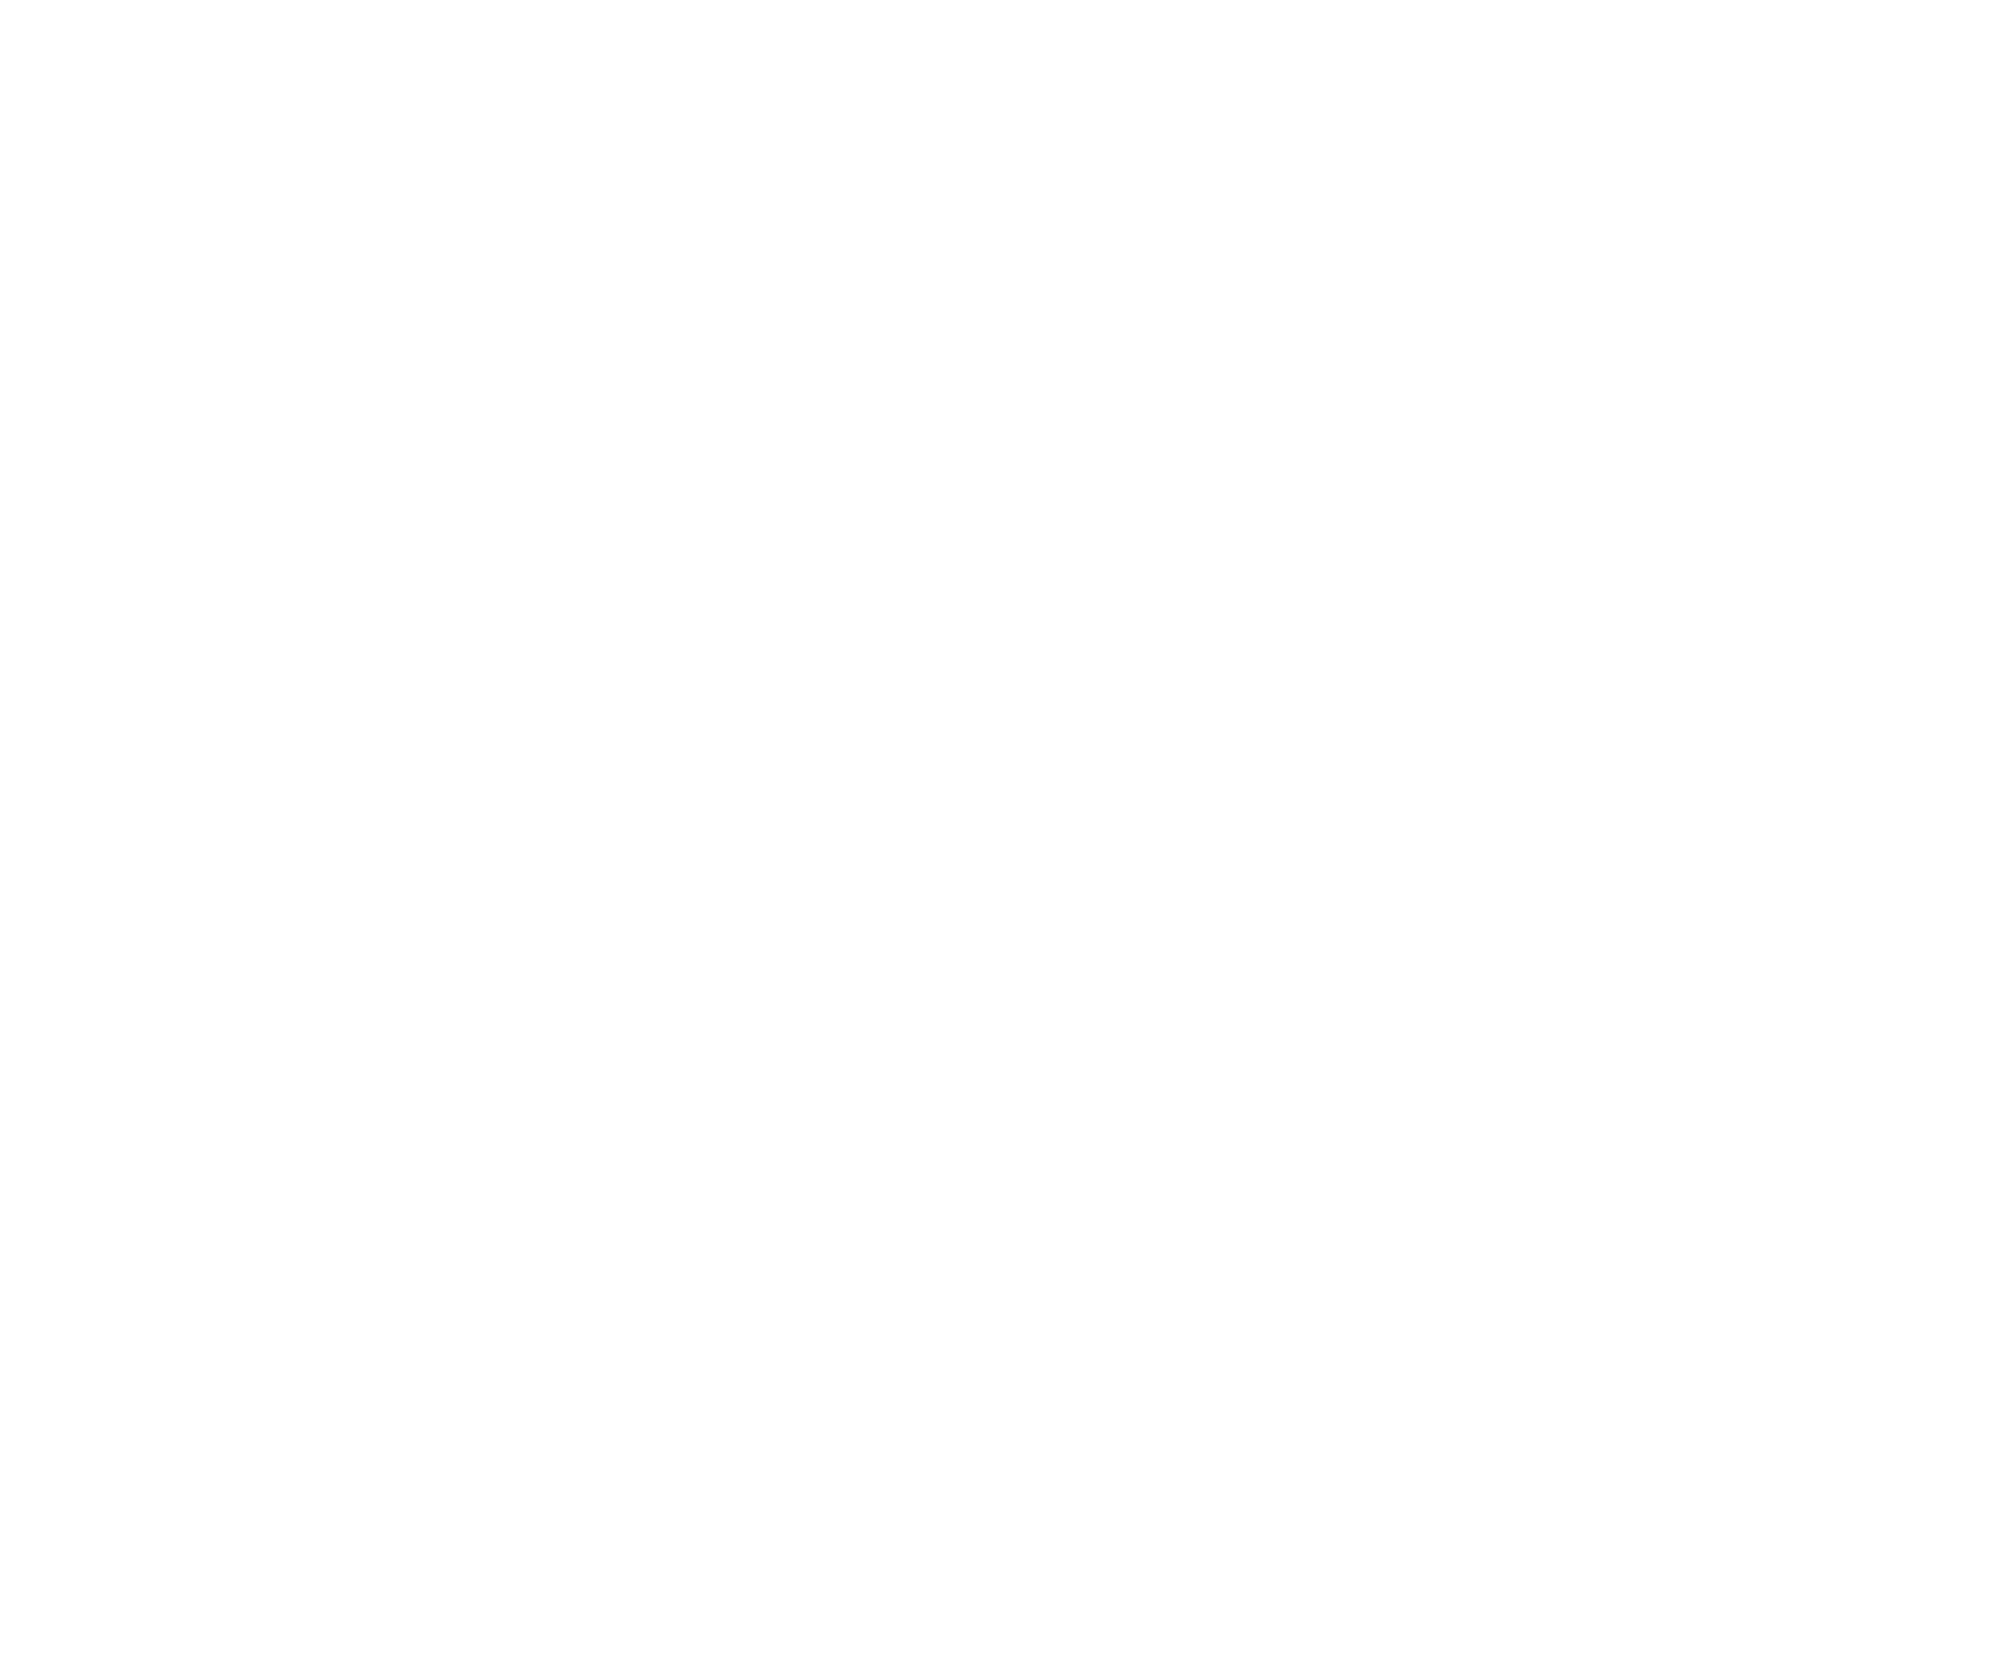 https://cbvinstitute.com/wp-content/uploads/2021/03/video-player.png